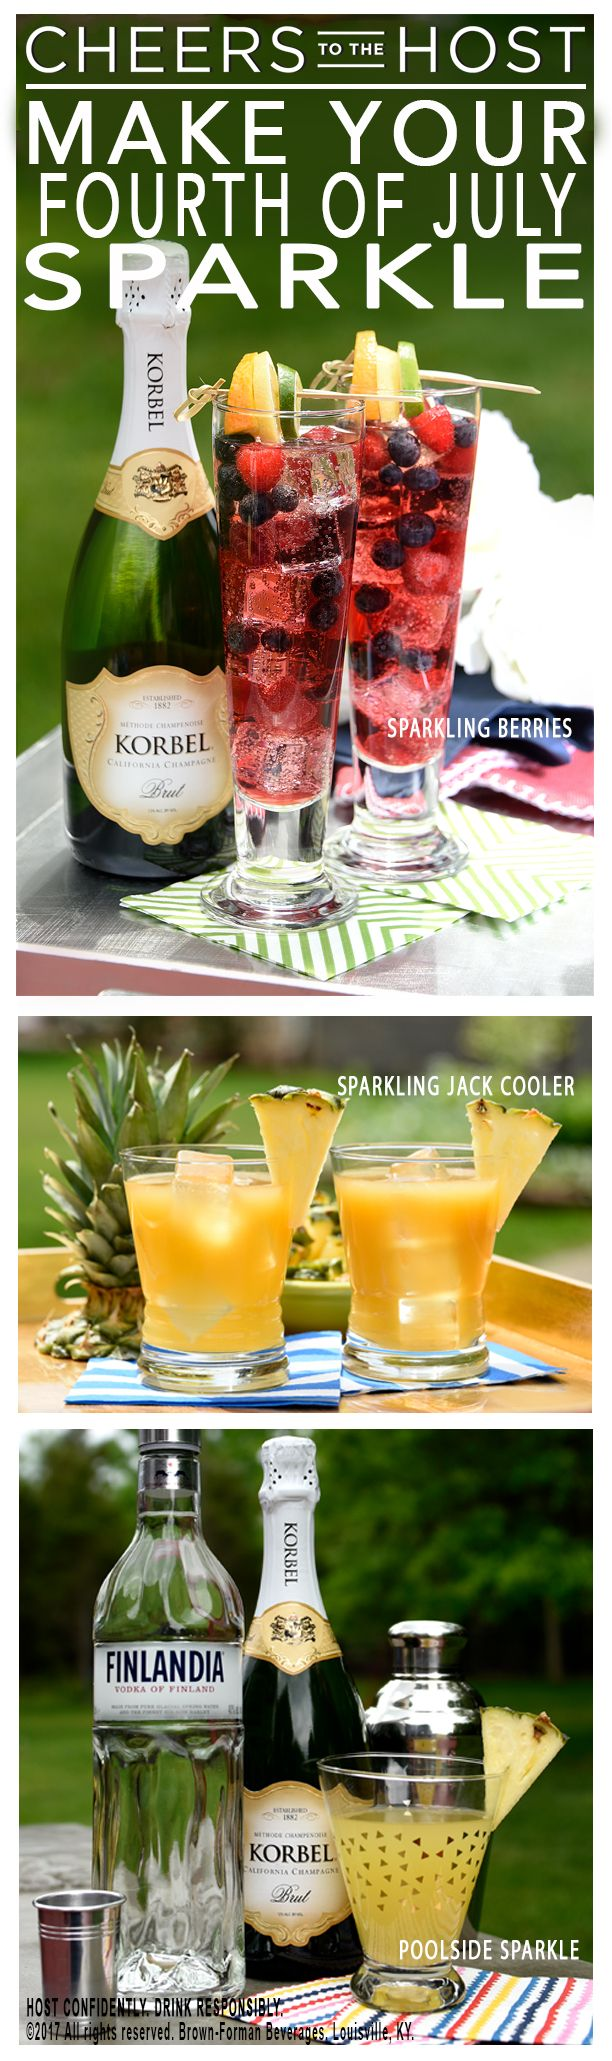 Add a pop to your 4th of July! Go to  CheerstotheHost.com to check out these three Korbel California Champagne cocktail recipes, sure to be a refreshing addition to all of your parties this summer.